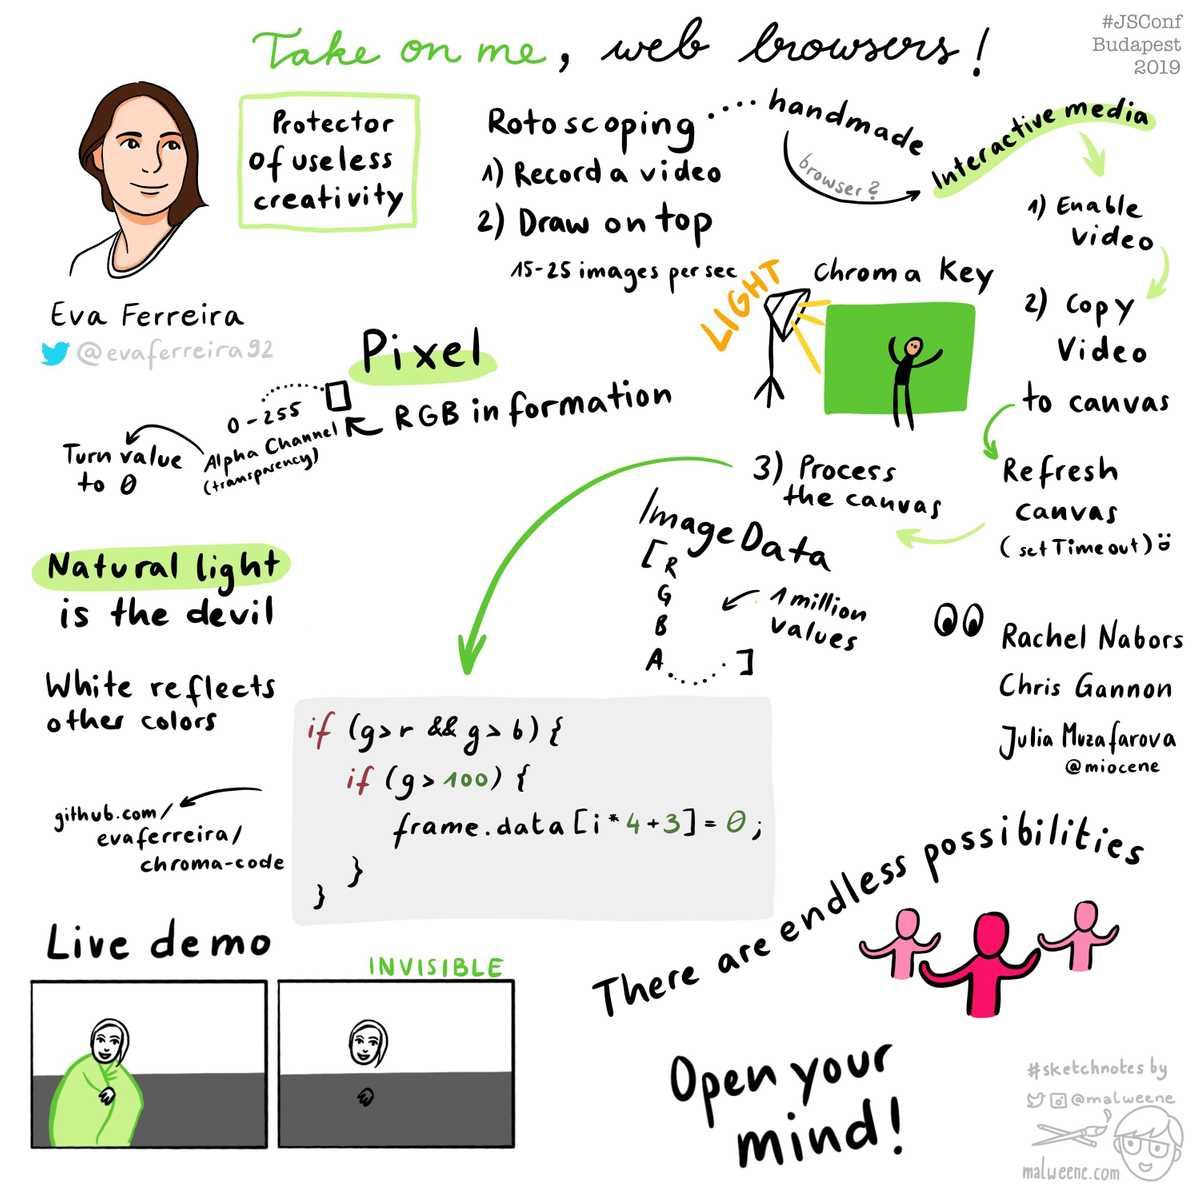 Hand-drawn sketch notes summarizing the talk of Eva Ferreira